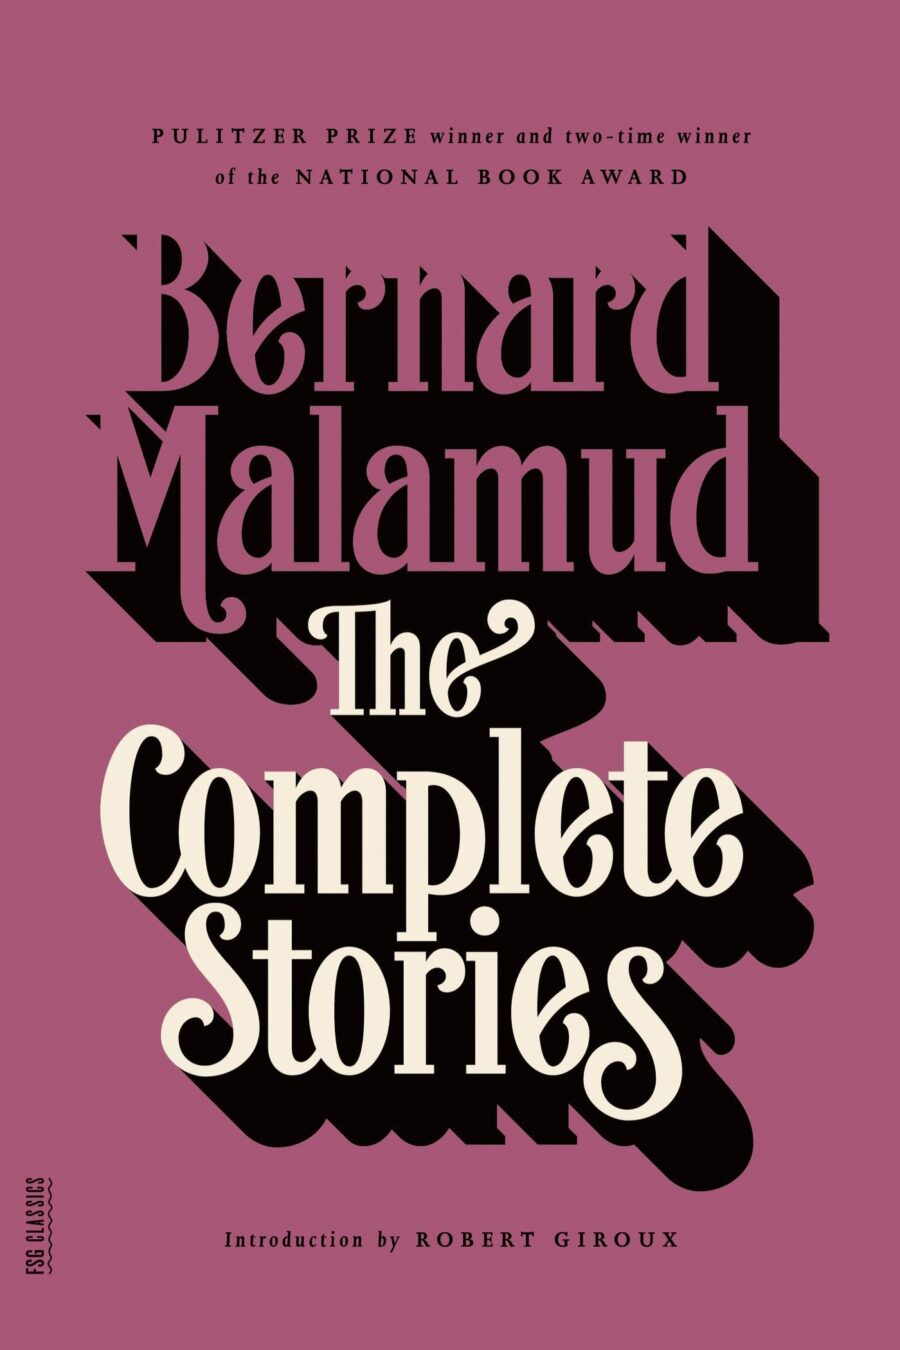 BernardMalamud_The-Complete_Stories